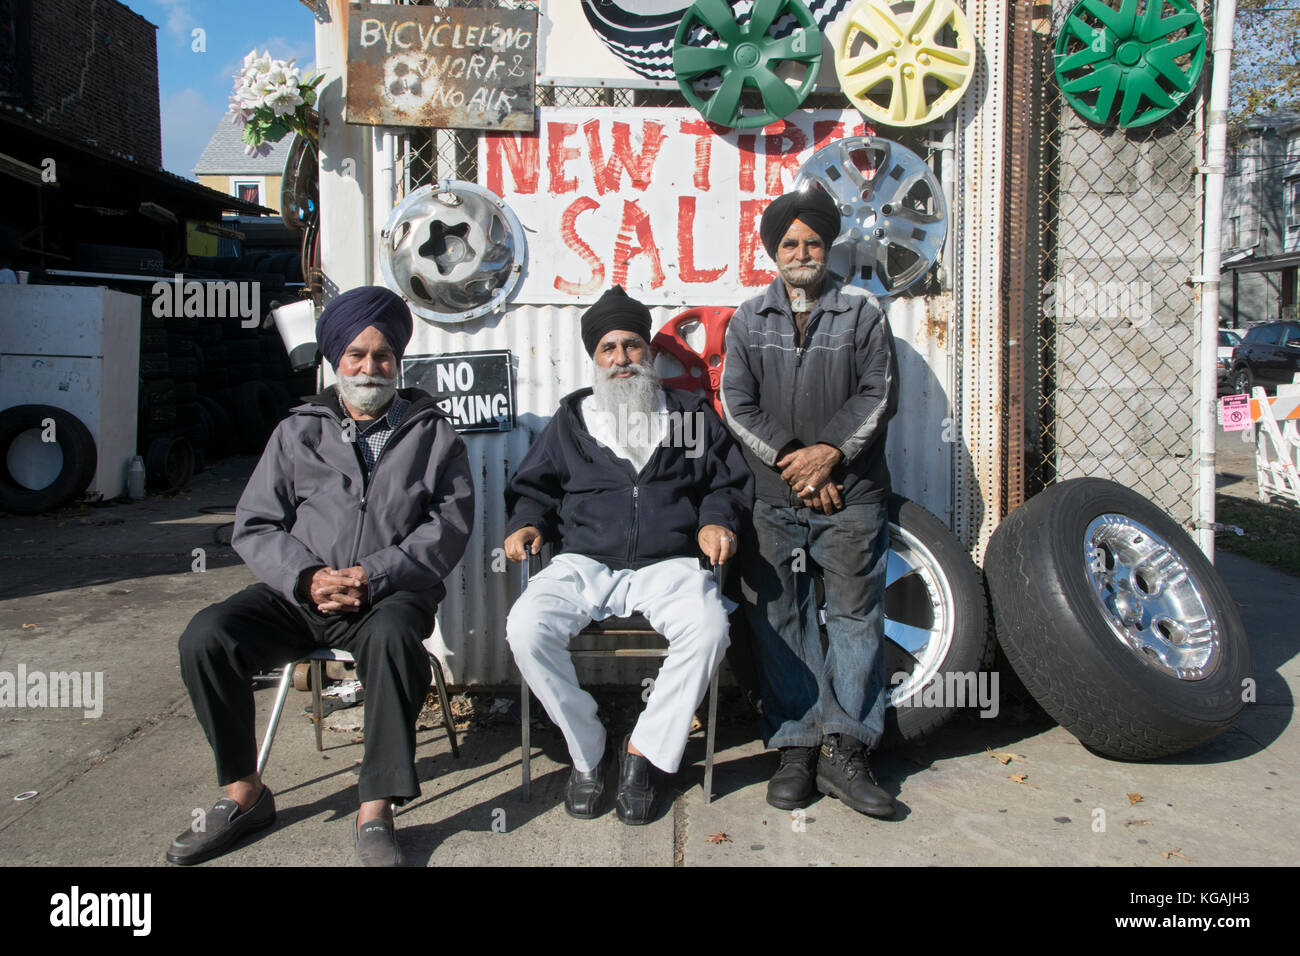 A  posed portrait of 3 Sikh Indian workers at the NY A-1 tire shop on 101st Avenue in Richmond Hill, Queens, New - Stock Image